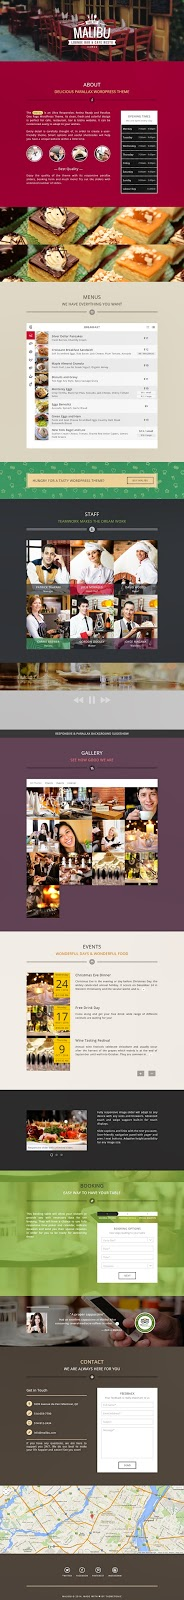 Premium Restaurant Cafe Bistro WP Theme